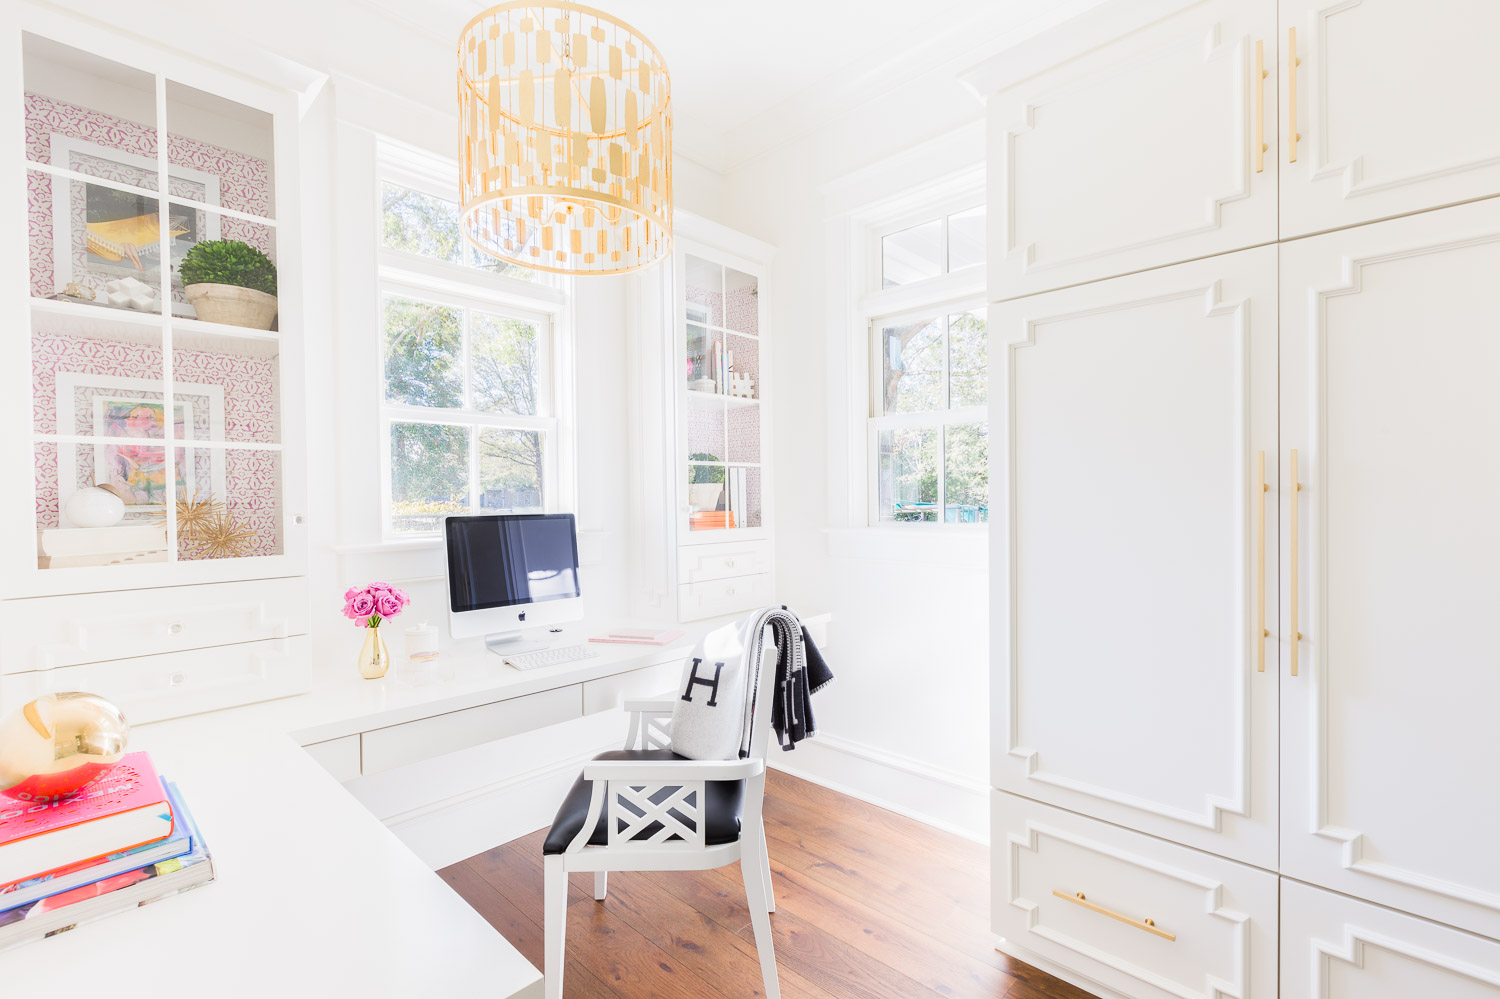 Office design by Laura Burleson / Photo by Alyssa Rosenheck